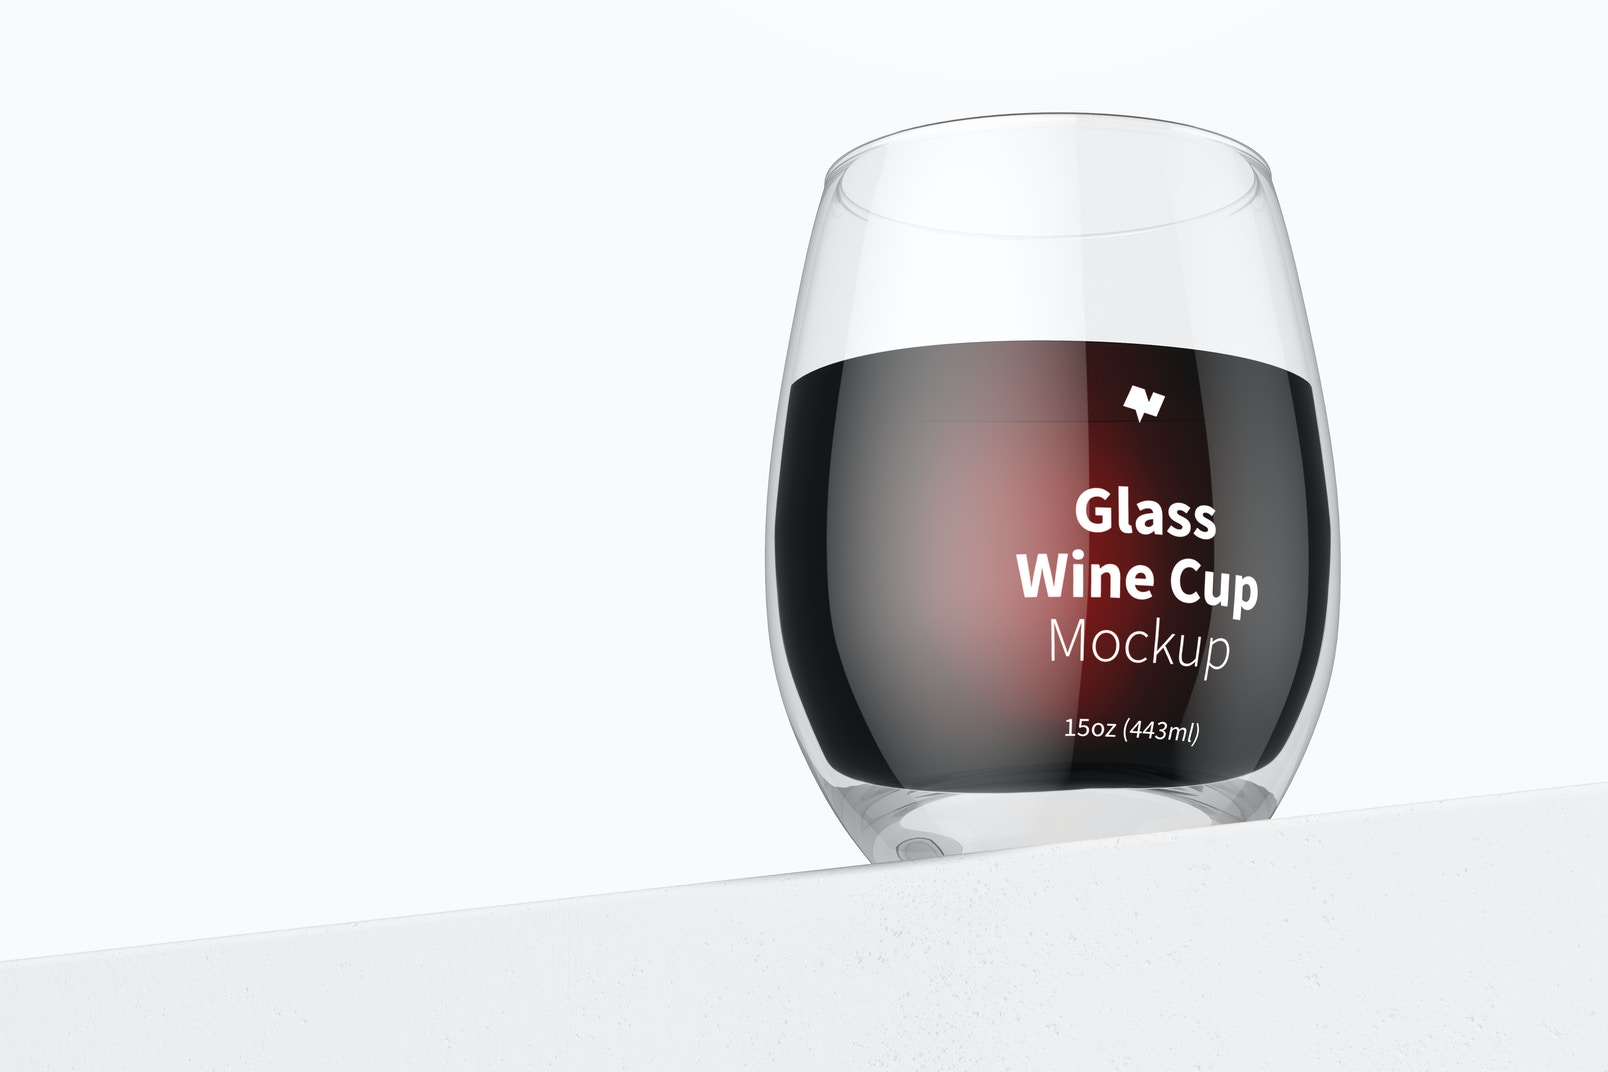 15 oz Glass Wine Cup Mockup, Perspective